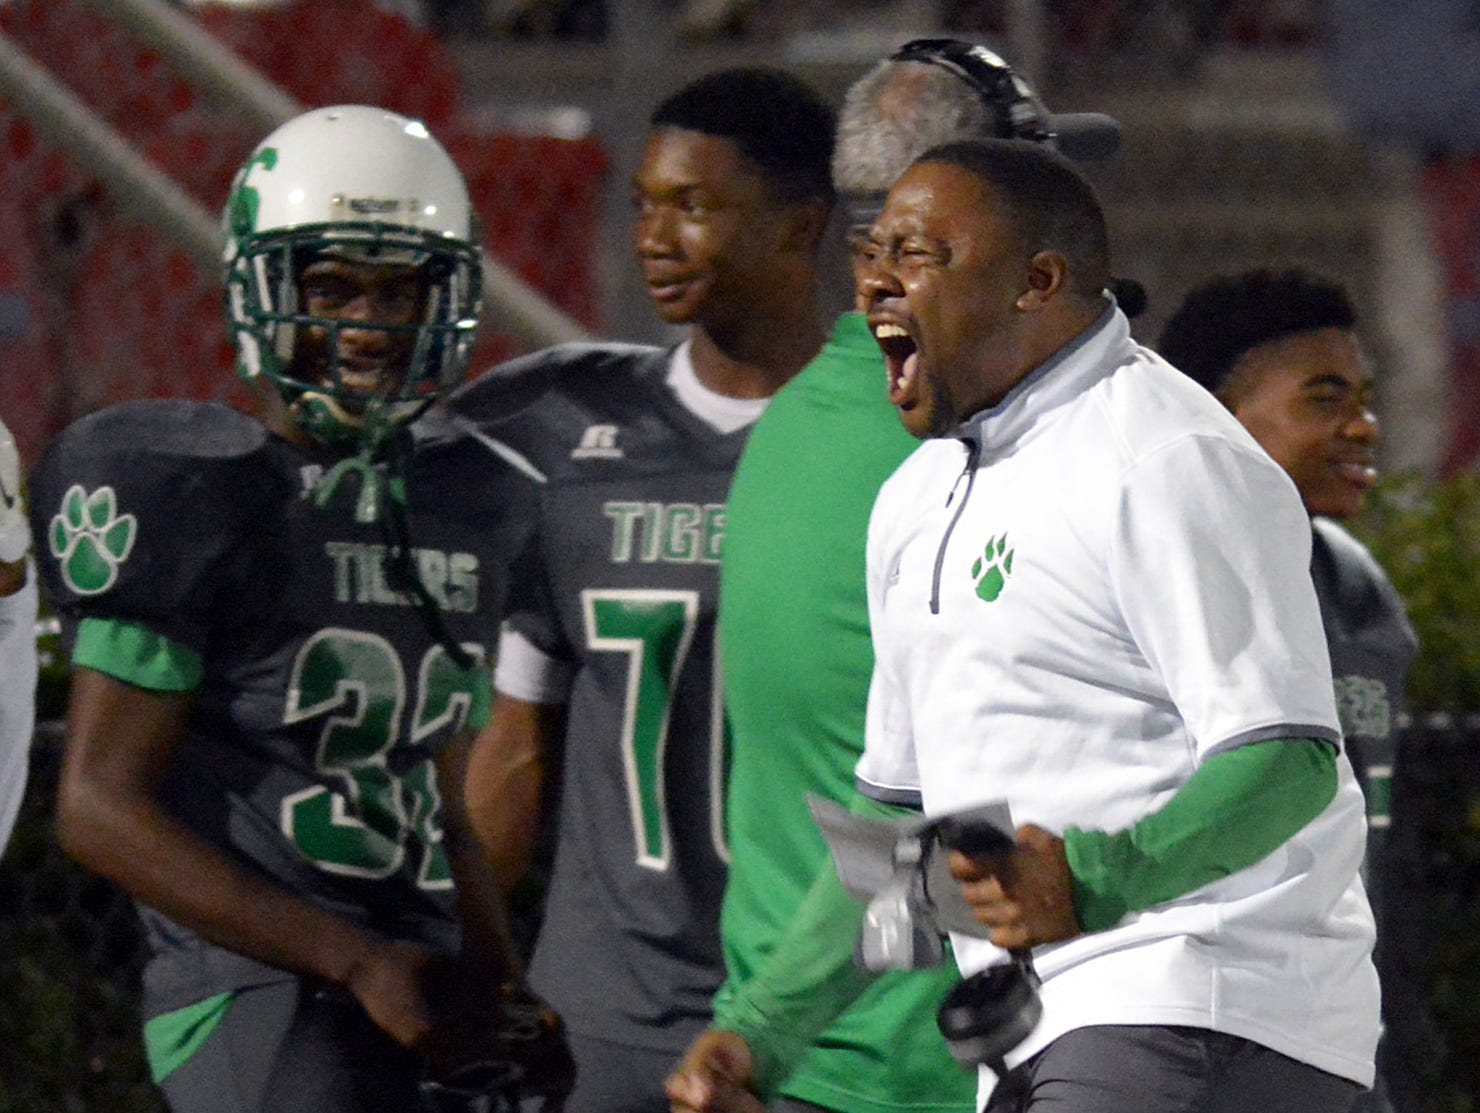 Collins head coach Ryan Earnest will lead his team into Friday's home game against West Marion for the Class 3A South State Championship.